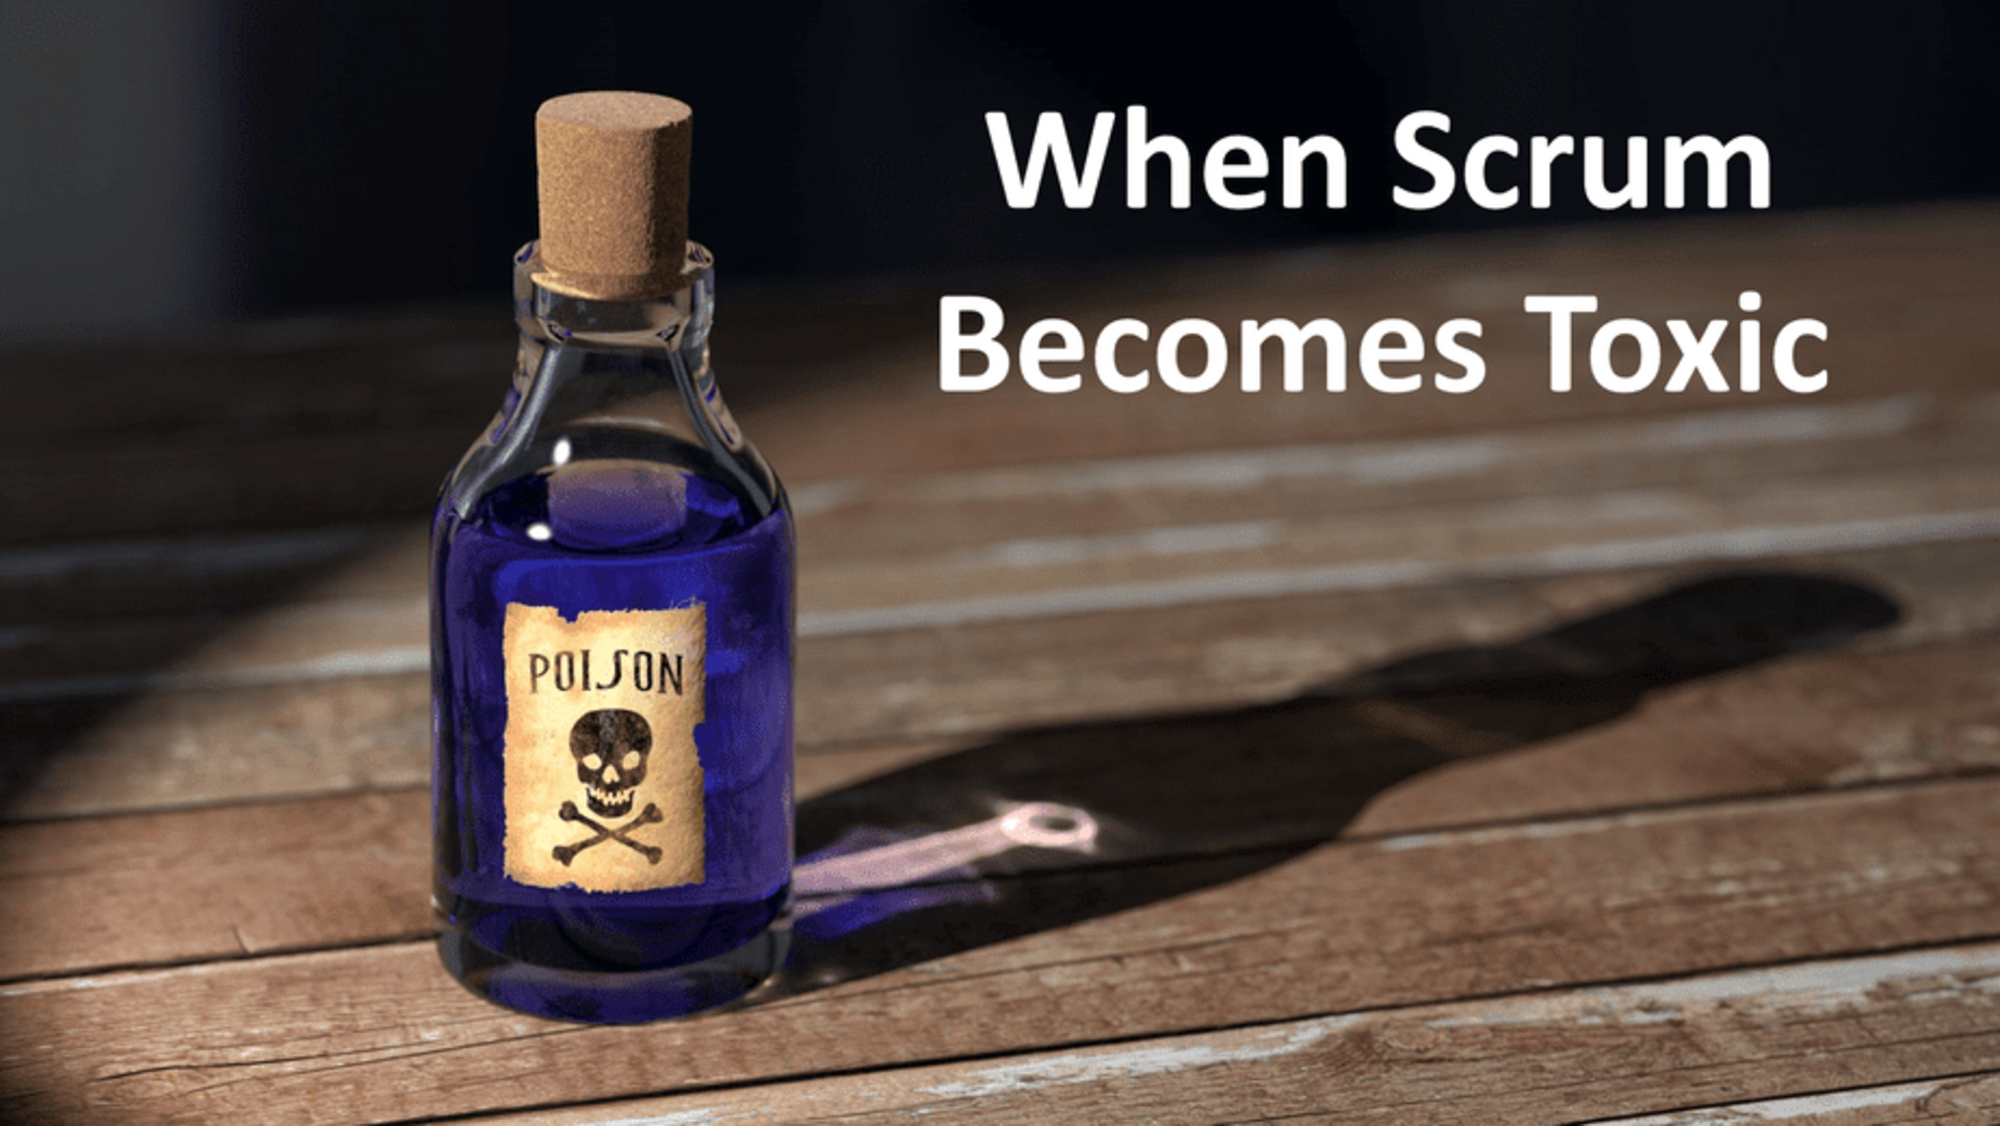 When Scrum Becomes Toxic